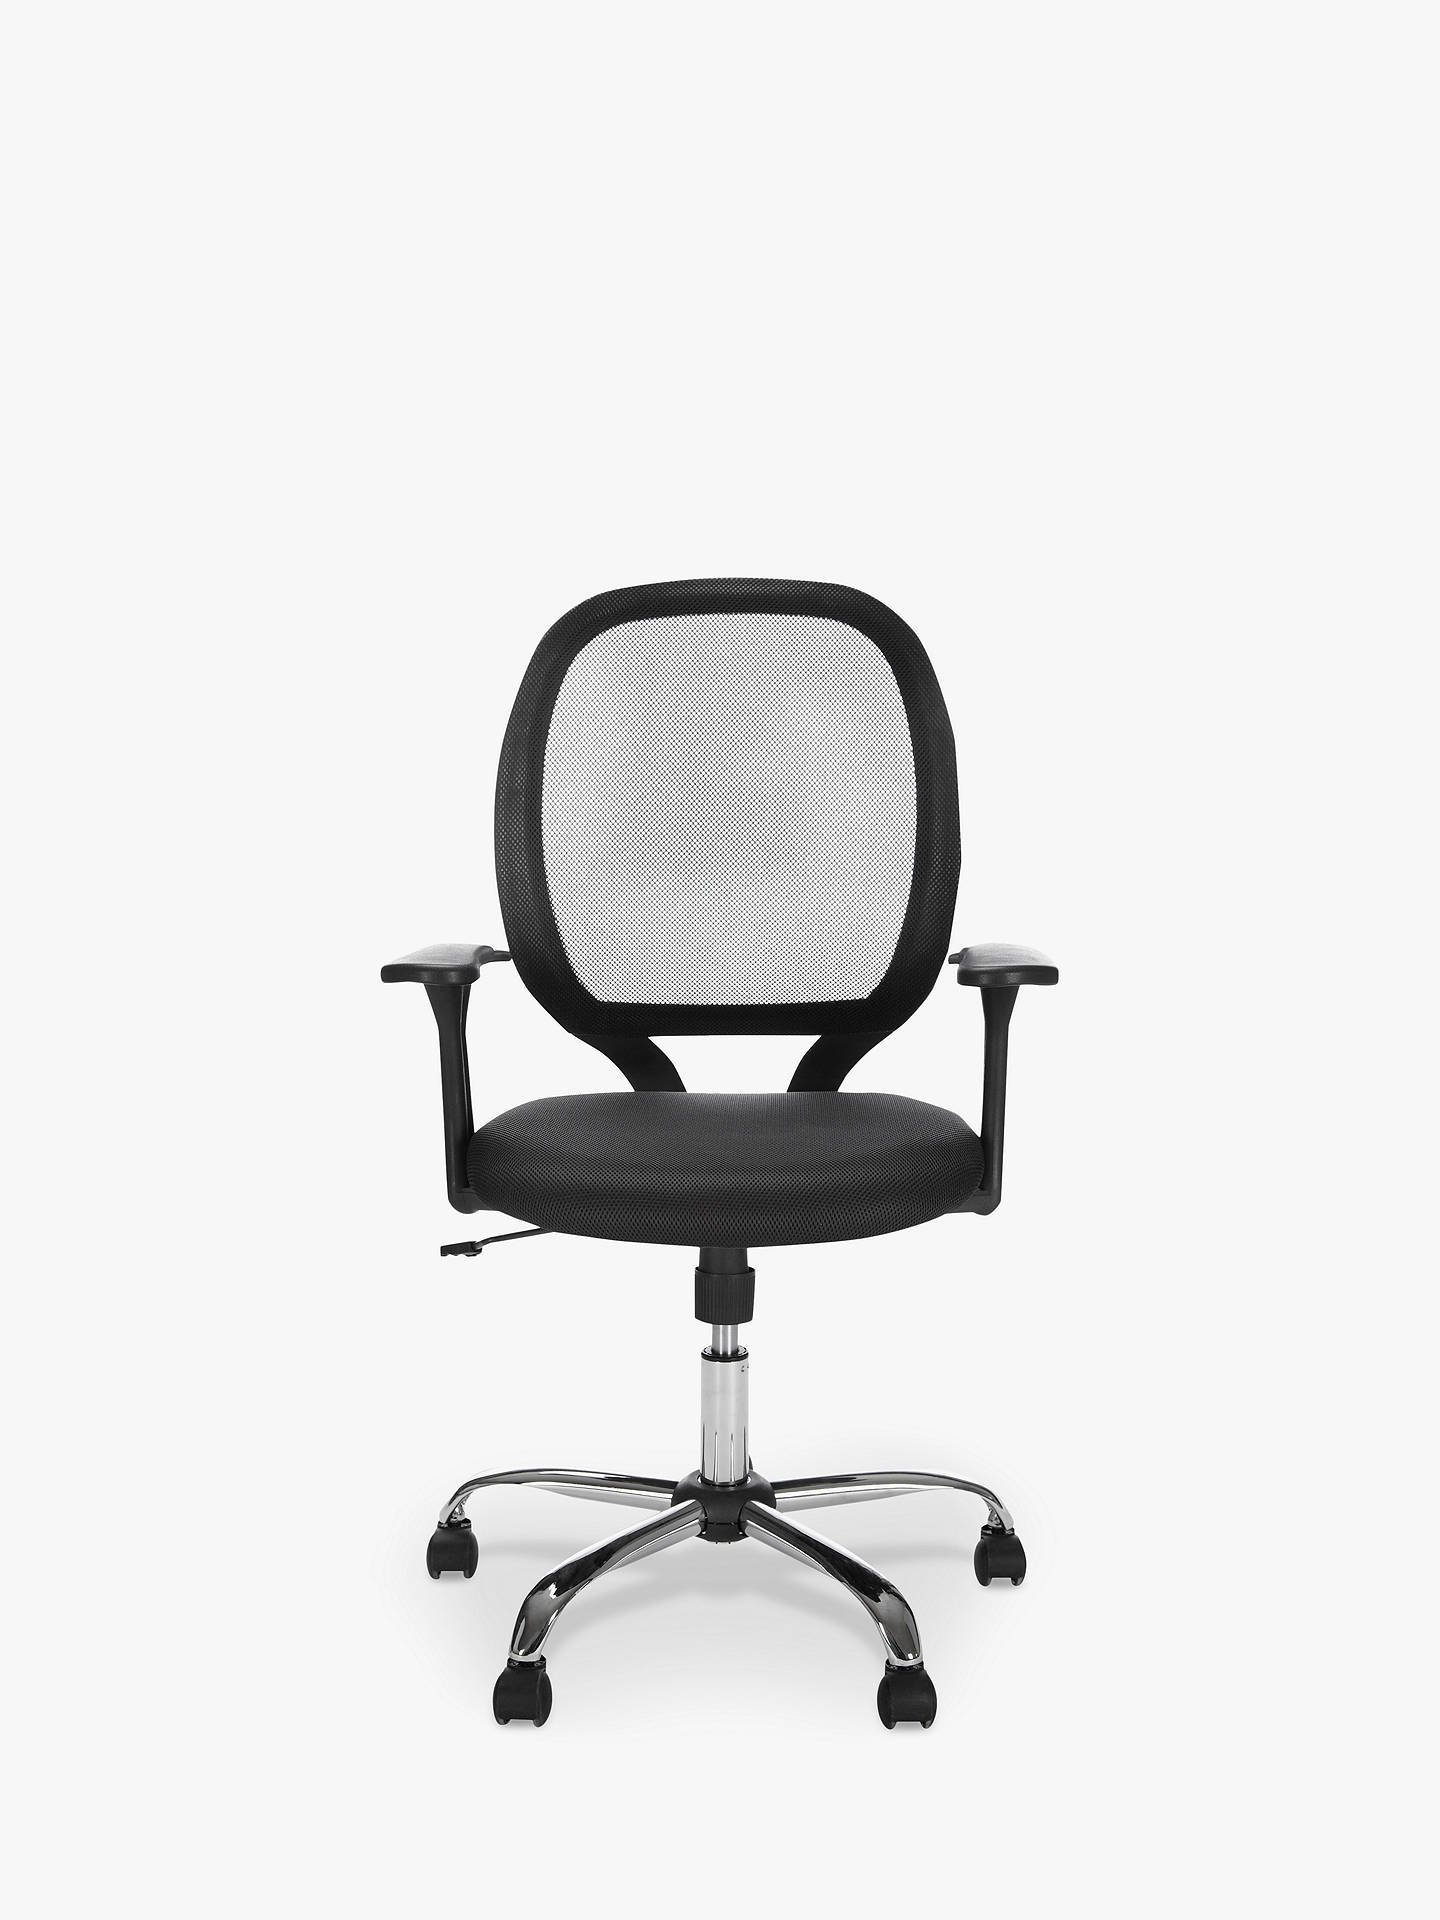 Buy John Lewis & Partners Penny Office Chair Online at johnlewis.com